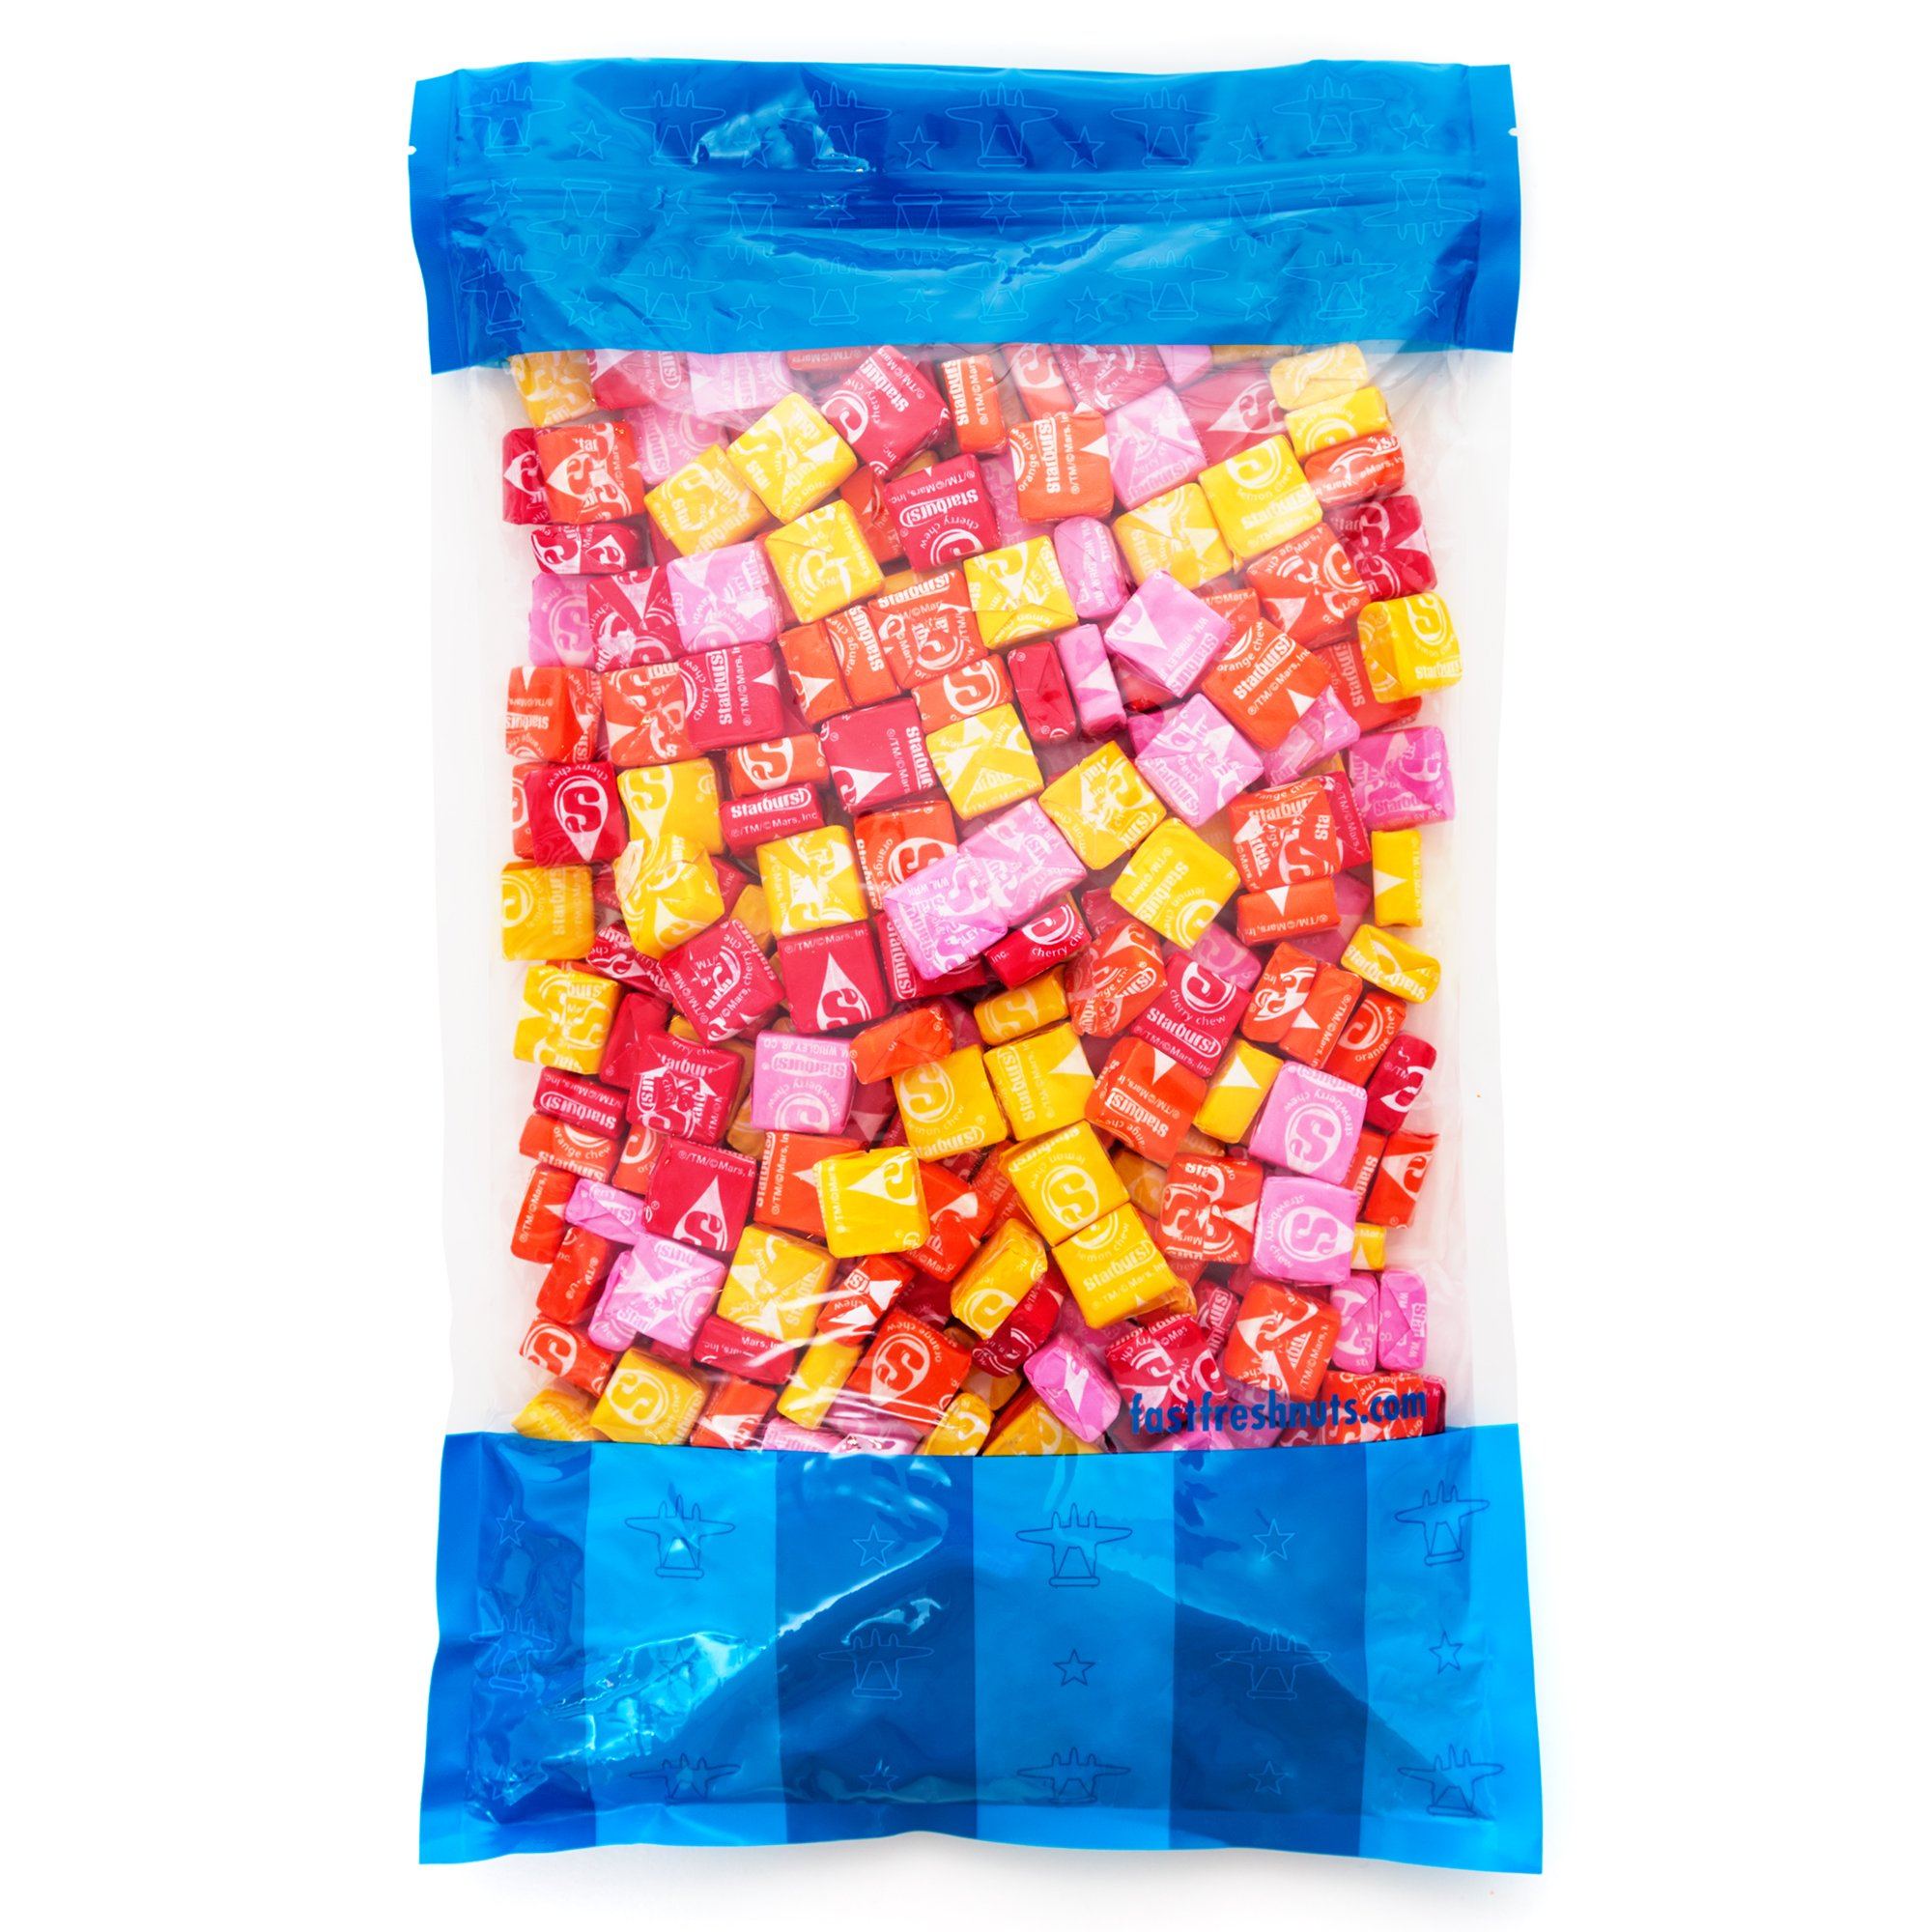 Bulk Starburst Original Fruit Chews in a Resealable Bomber Bag - 7 lbs - Wholesale Candy - Perfect for Office Candy Bowls - Parties - Holidays - Vending